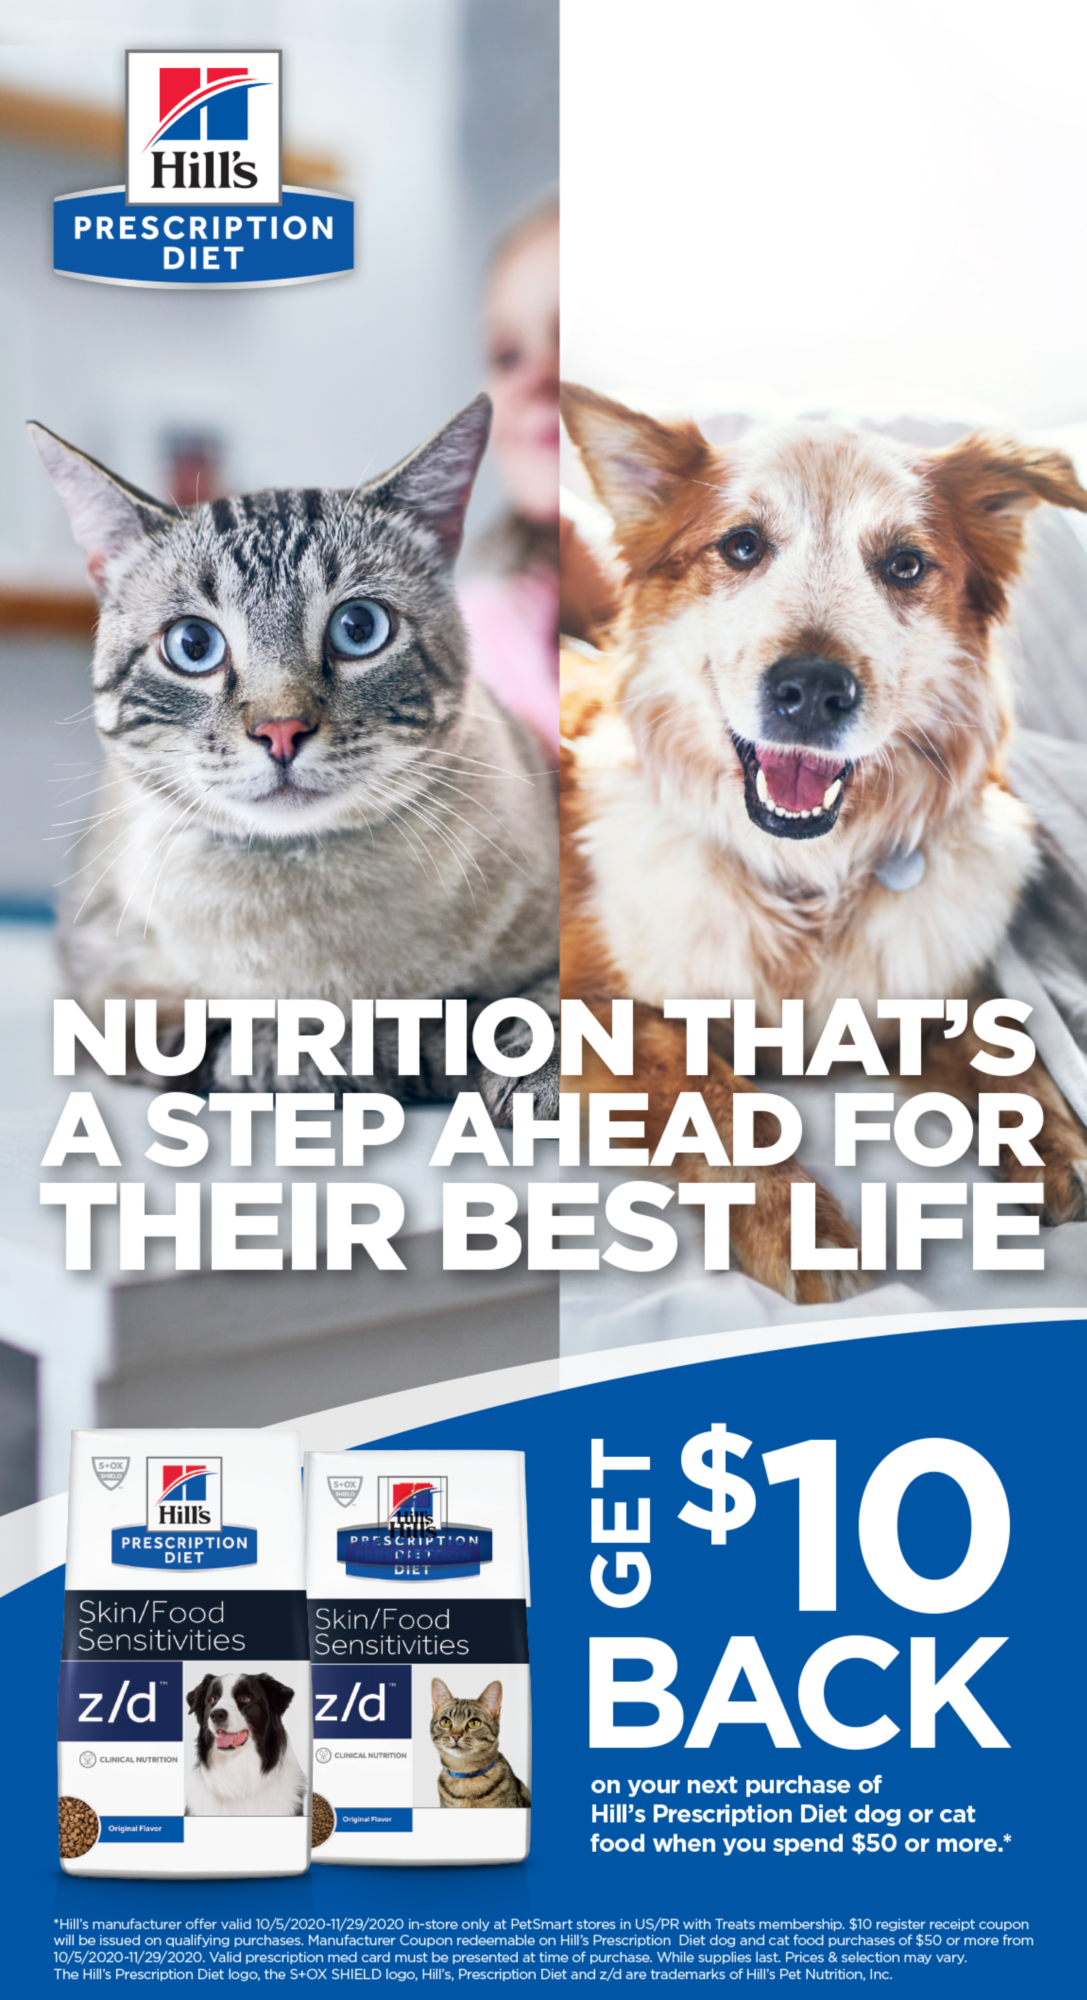 NUTRITION THAT'S A STEP AHEAD FOR THEIR BEST LIFE                          GET $10 BACK on your next purchase of Hill's Prescription Diet dog  or cat food when you spend $50 or more.                                                  *Hill's manufacturer offer valid 10/5/20-11/29/20 in-store only at Petsmart stores in US/PR with Treats membership. $10 register receipt coupon will be issued on qualifying purchases. Manufacturer Coupon redeemable on Hill's Prescription Diet dog and cat food purchases of $50 or more from 10/5/20-11/29/20. Valid prescription med card must be presented at time of purchase. While supplies last. Prices & selection may vary. The Hill's Prescription diet logo, the S+OX SHIELD logo, Hill's, Prescription Diet and z/d are trademarks of Hill's Pet Nutrition, Inc.